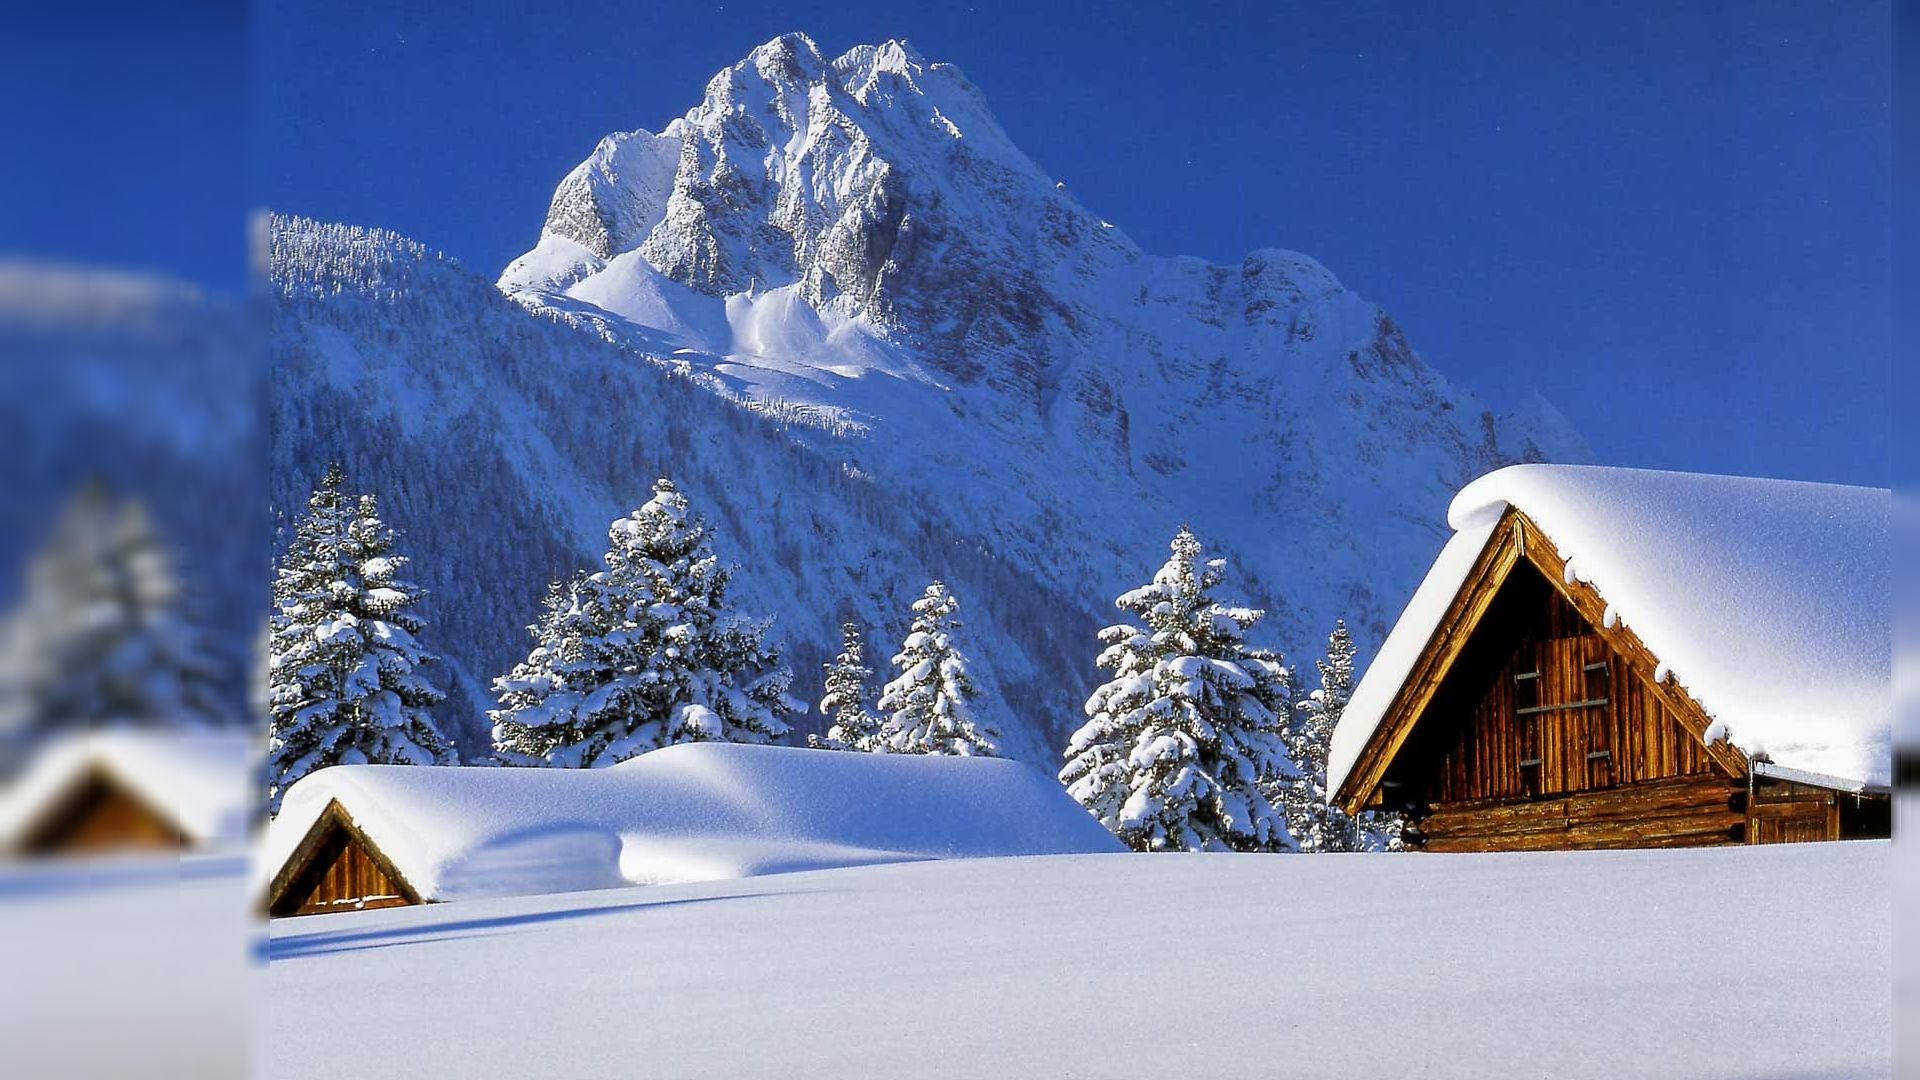 beautiful christmas pictures for desktop | ... ×1080 Winter Wallpapers For Desktop | 1920x1080 Wallpapers Gallery